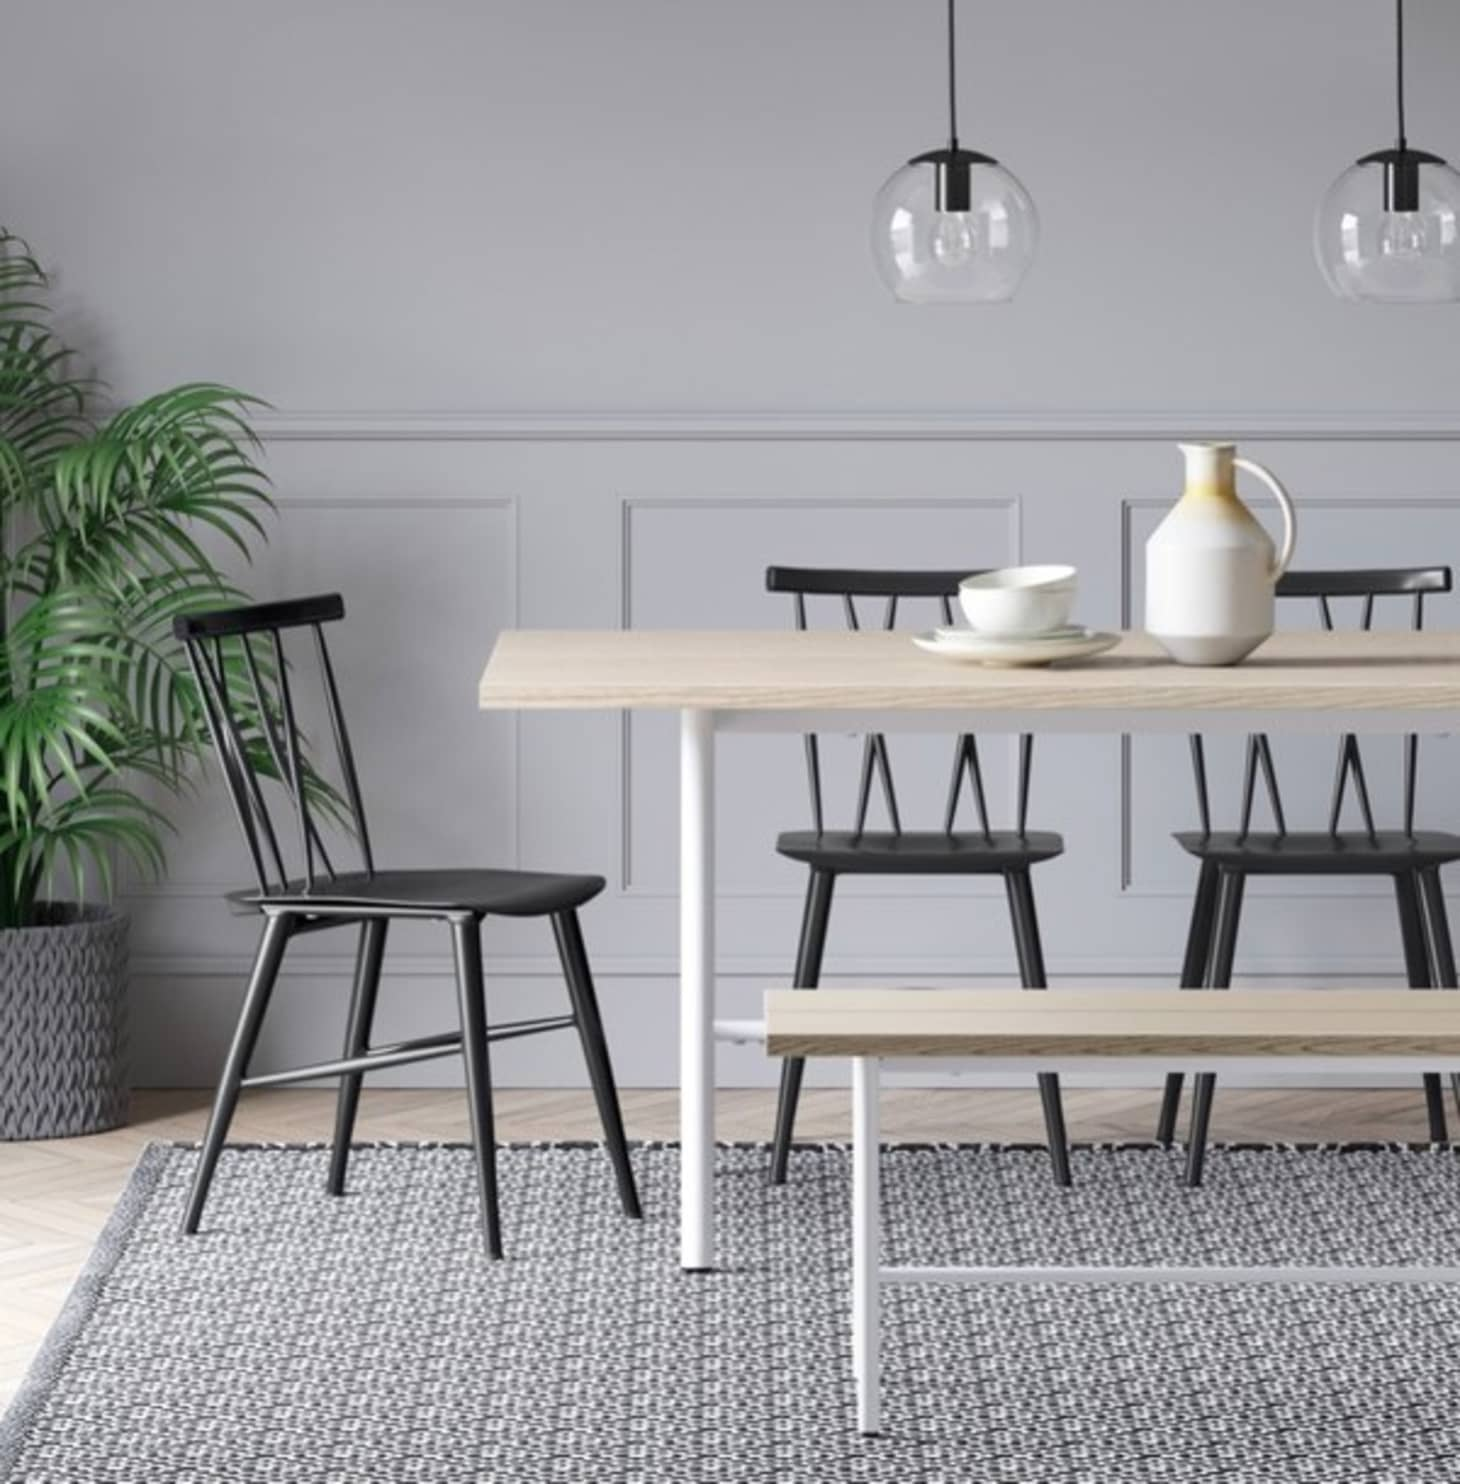 Target Dining Chair Stool Sale Home Deals April 2019 Apartment